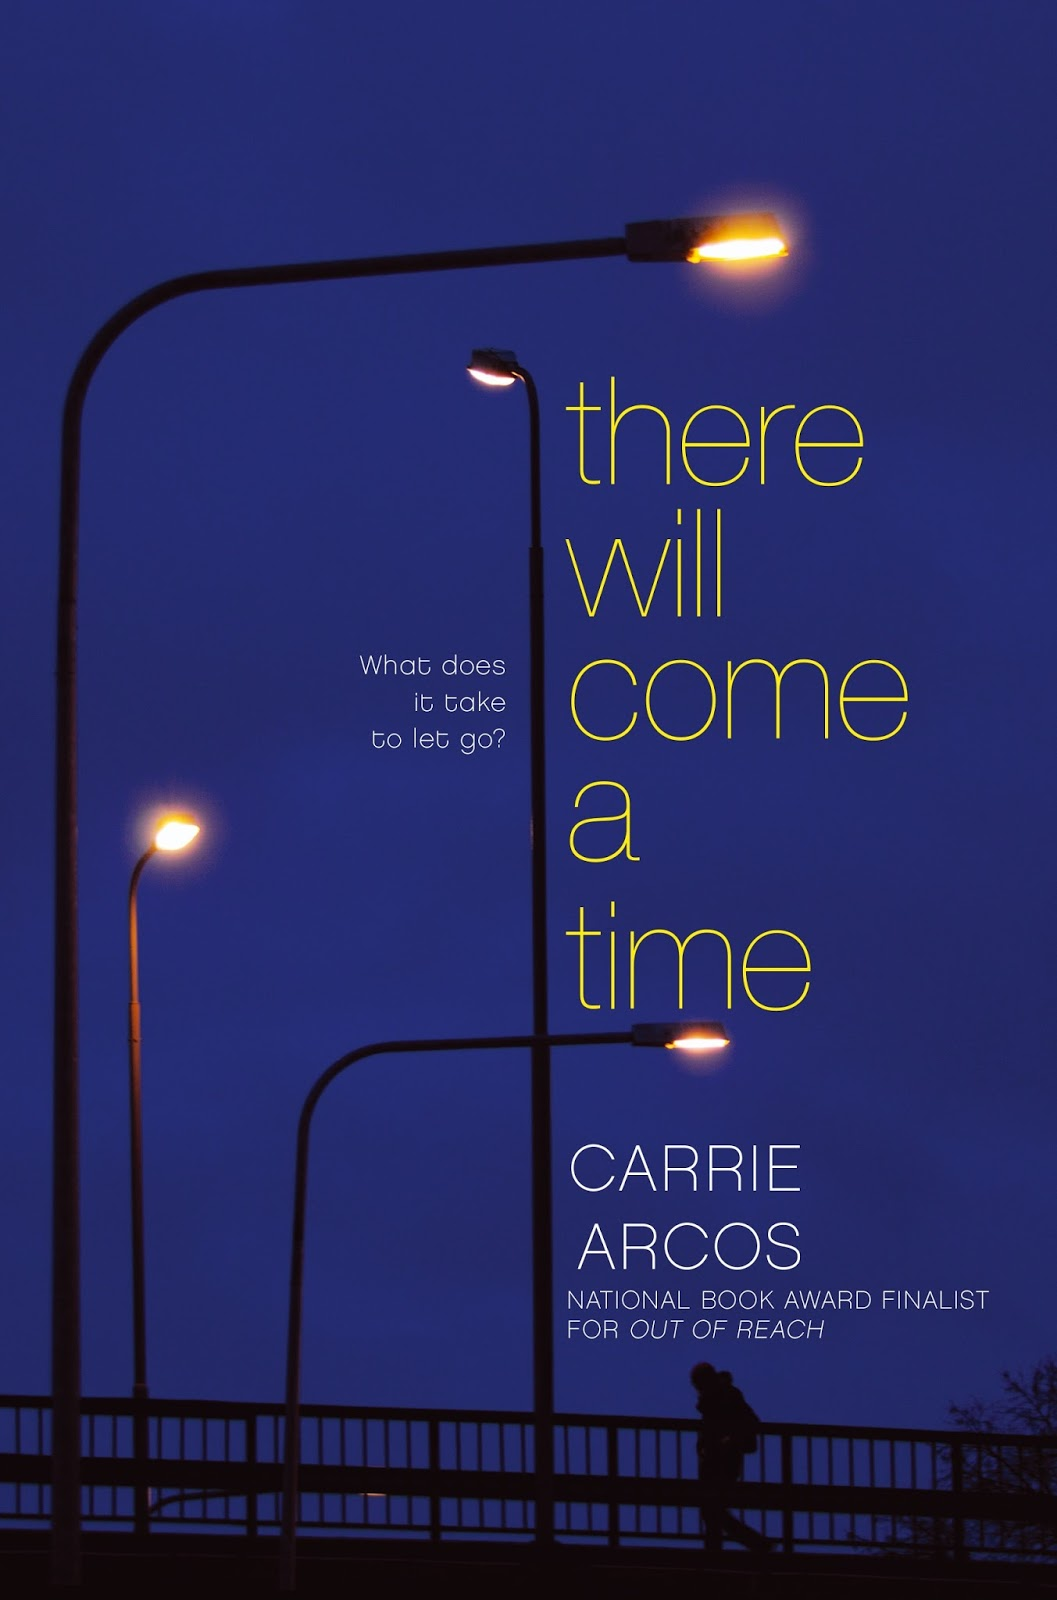 https://www.goodreads.com/book/show/18249312-there-will-come-a-time